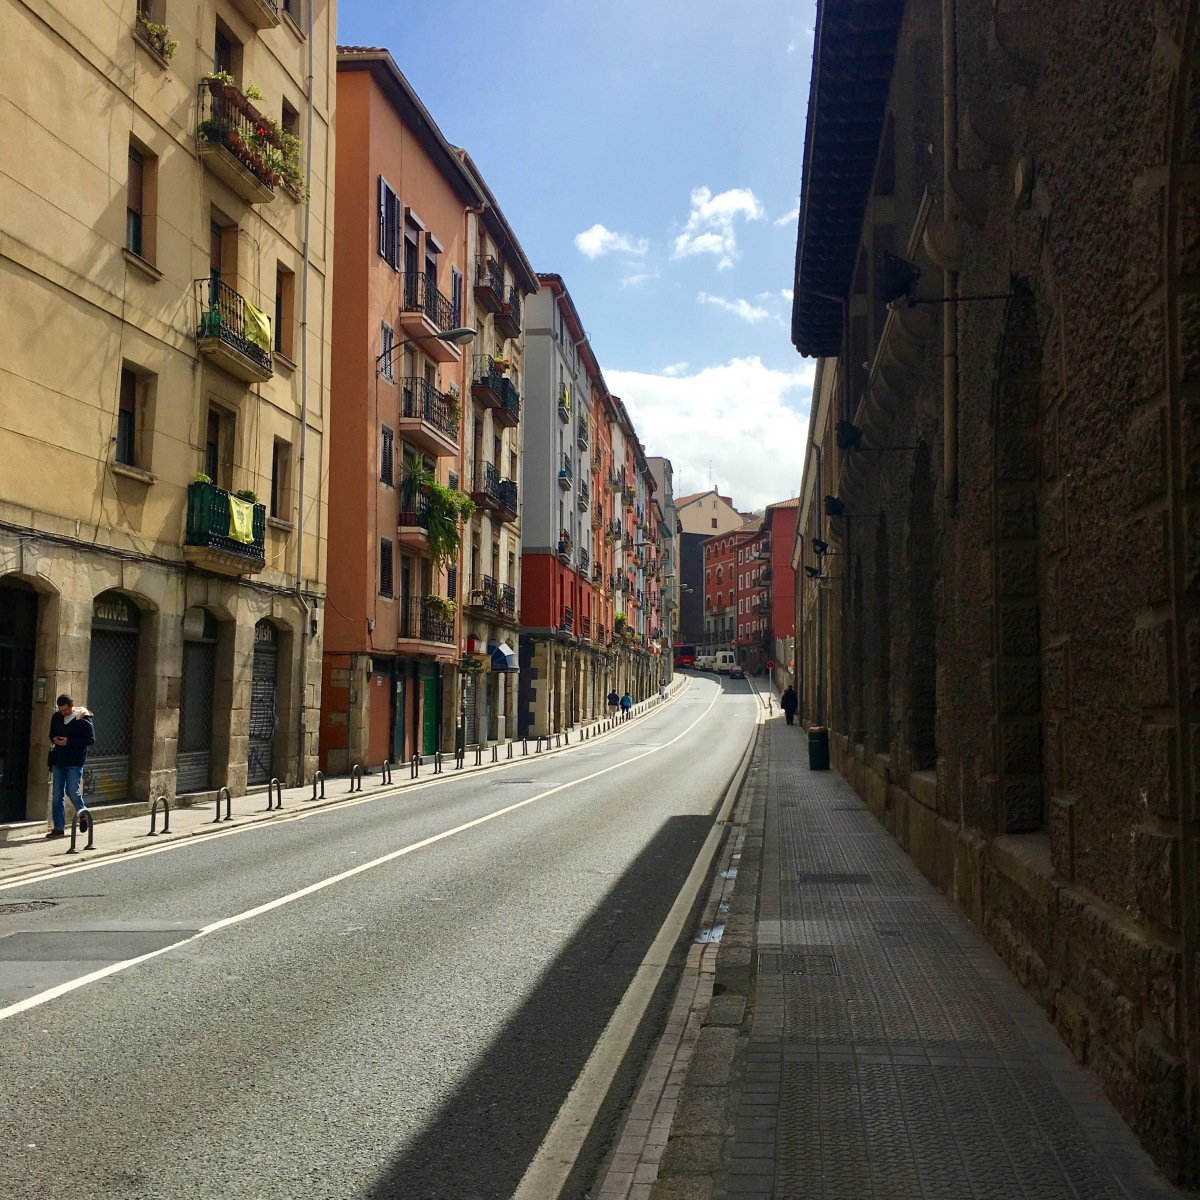 A holiday for the senses - Bilbao, Spain